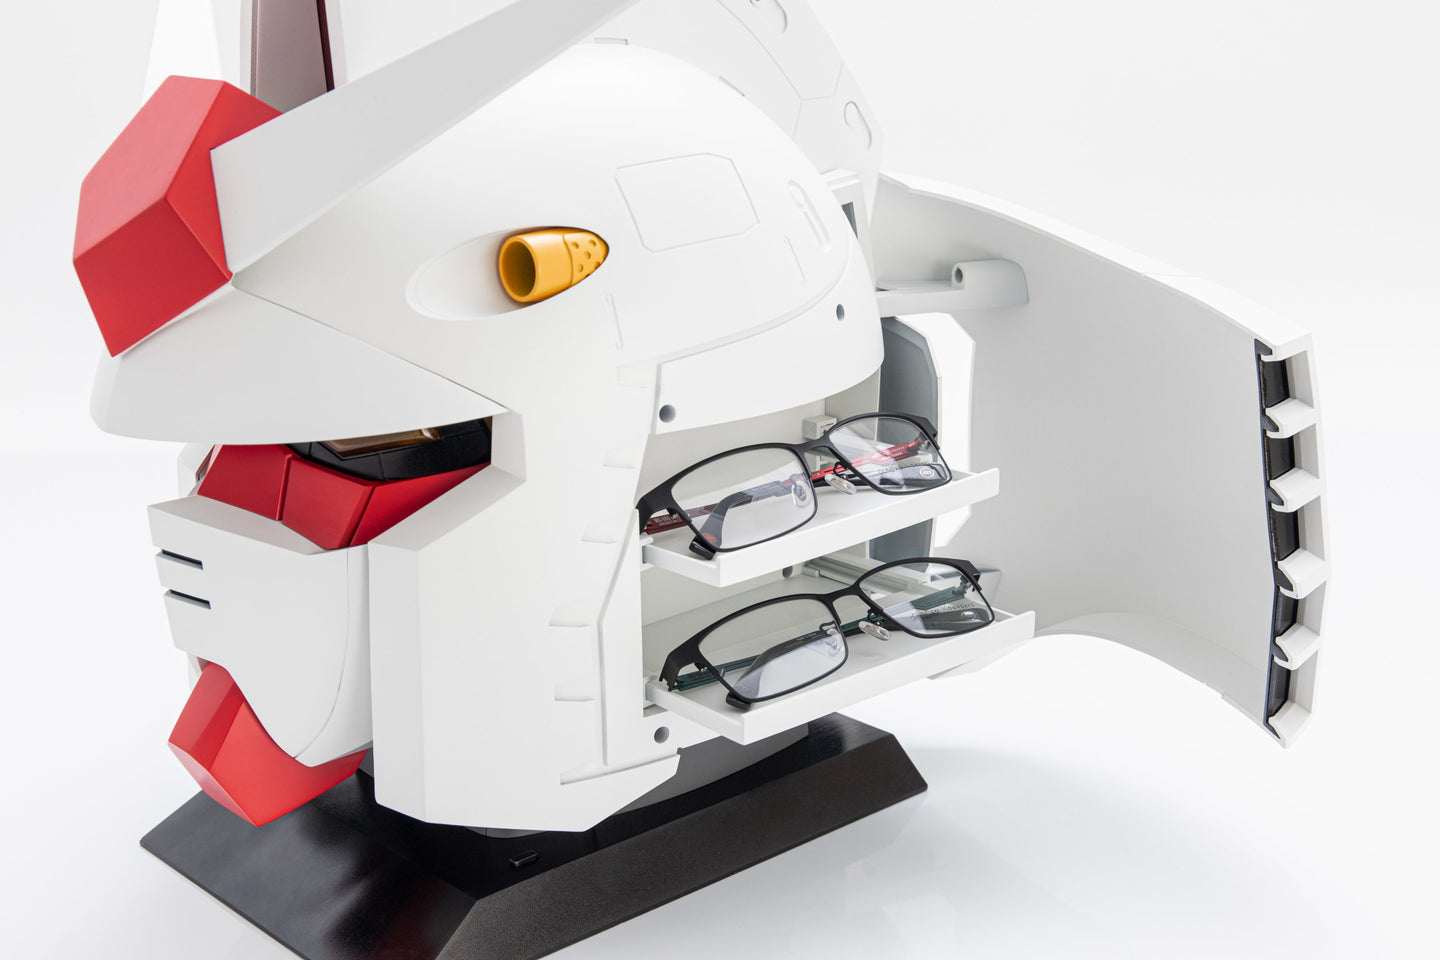 RX-78-2 Gundam Glasses Case